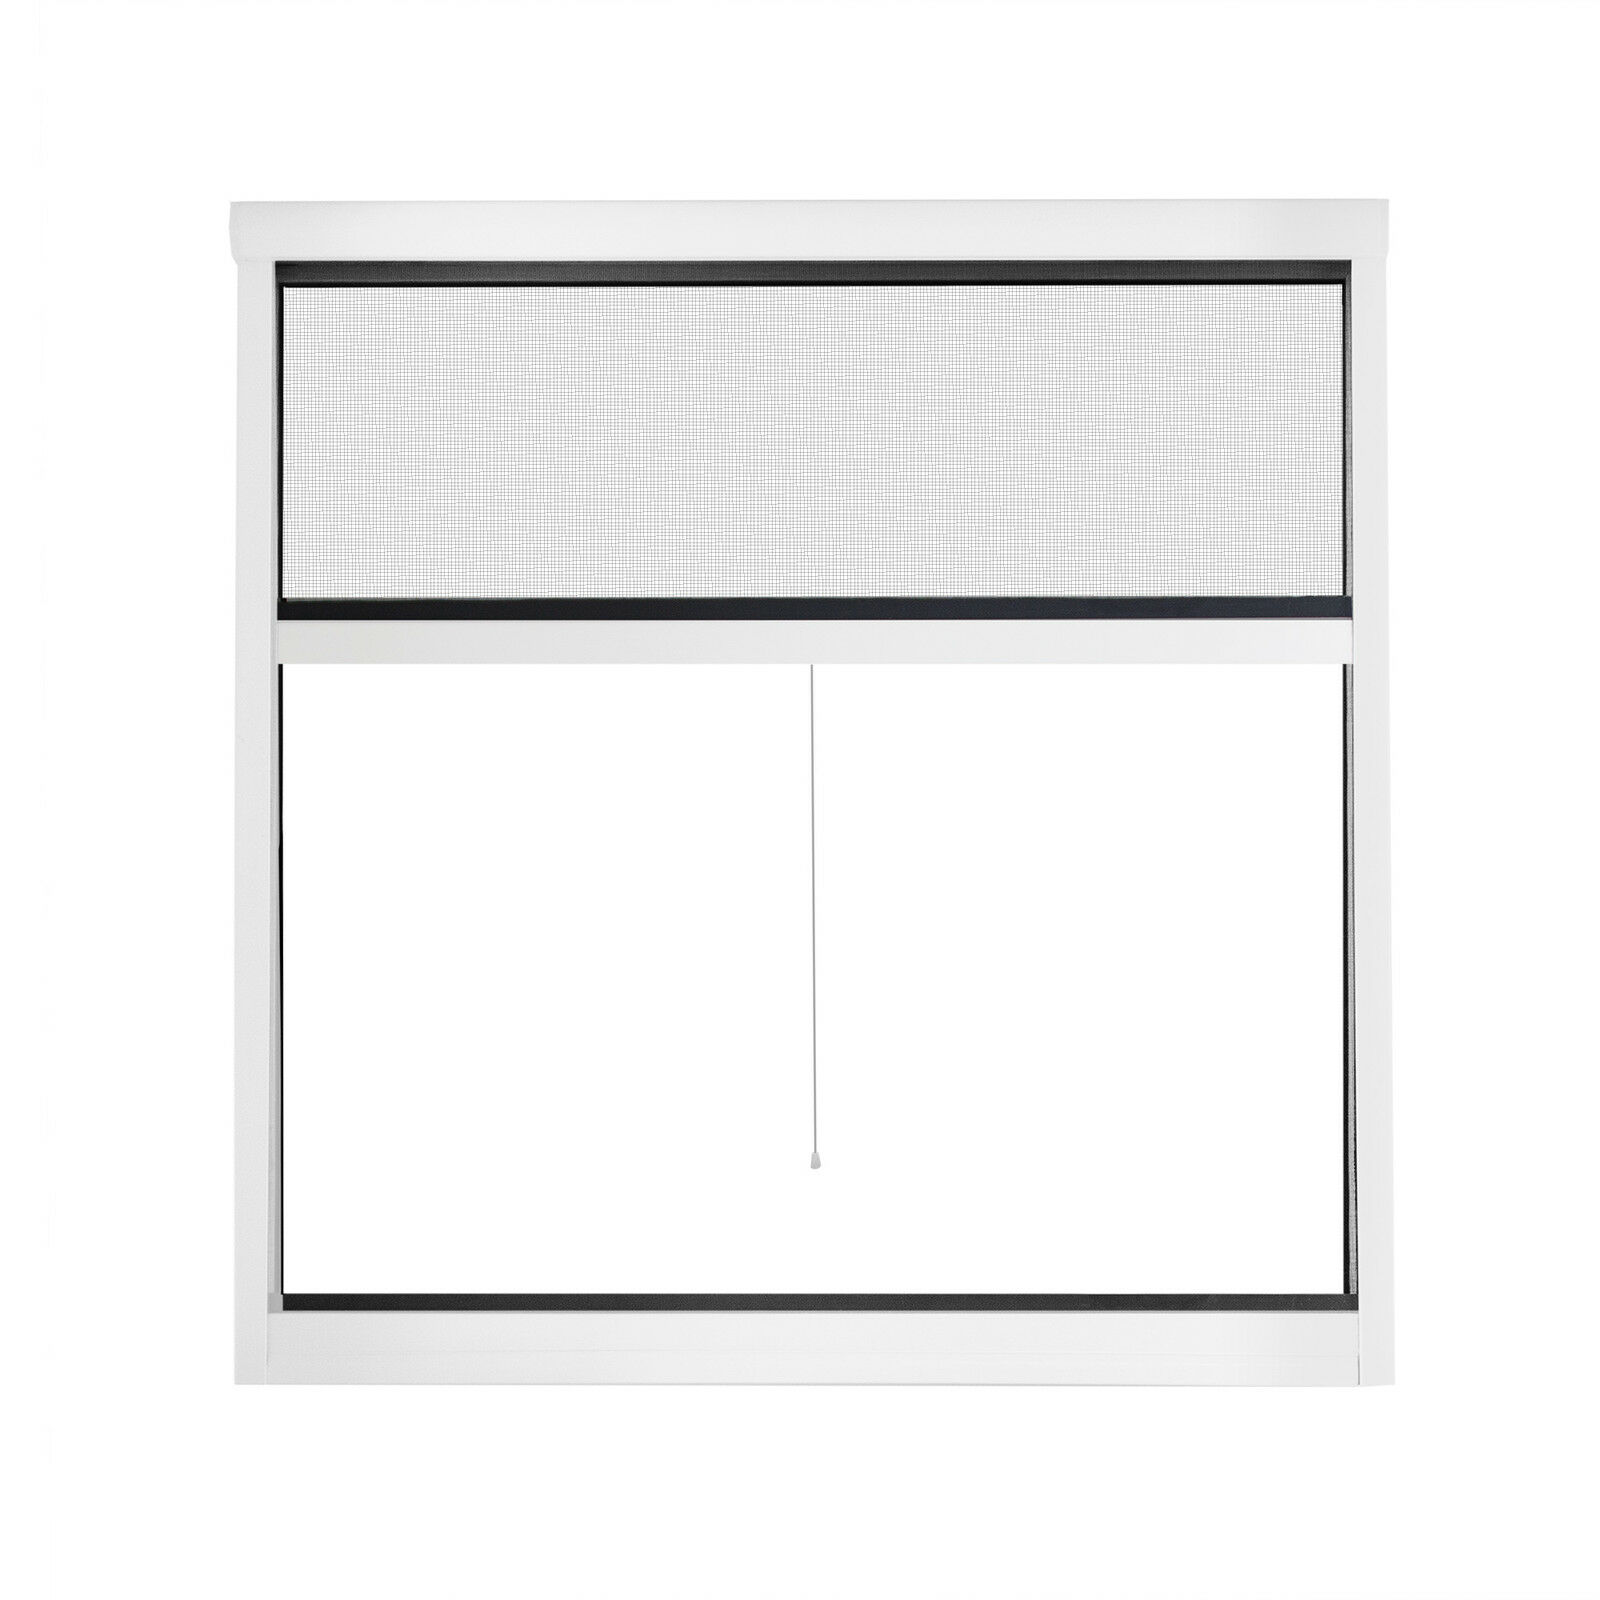 insektenschutzrollo fenster kleben gitter ohne bohren klebfix 130x160cm wei eur 27 99. Black Bedroom Furniture Sets. Home Design Ideas